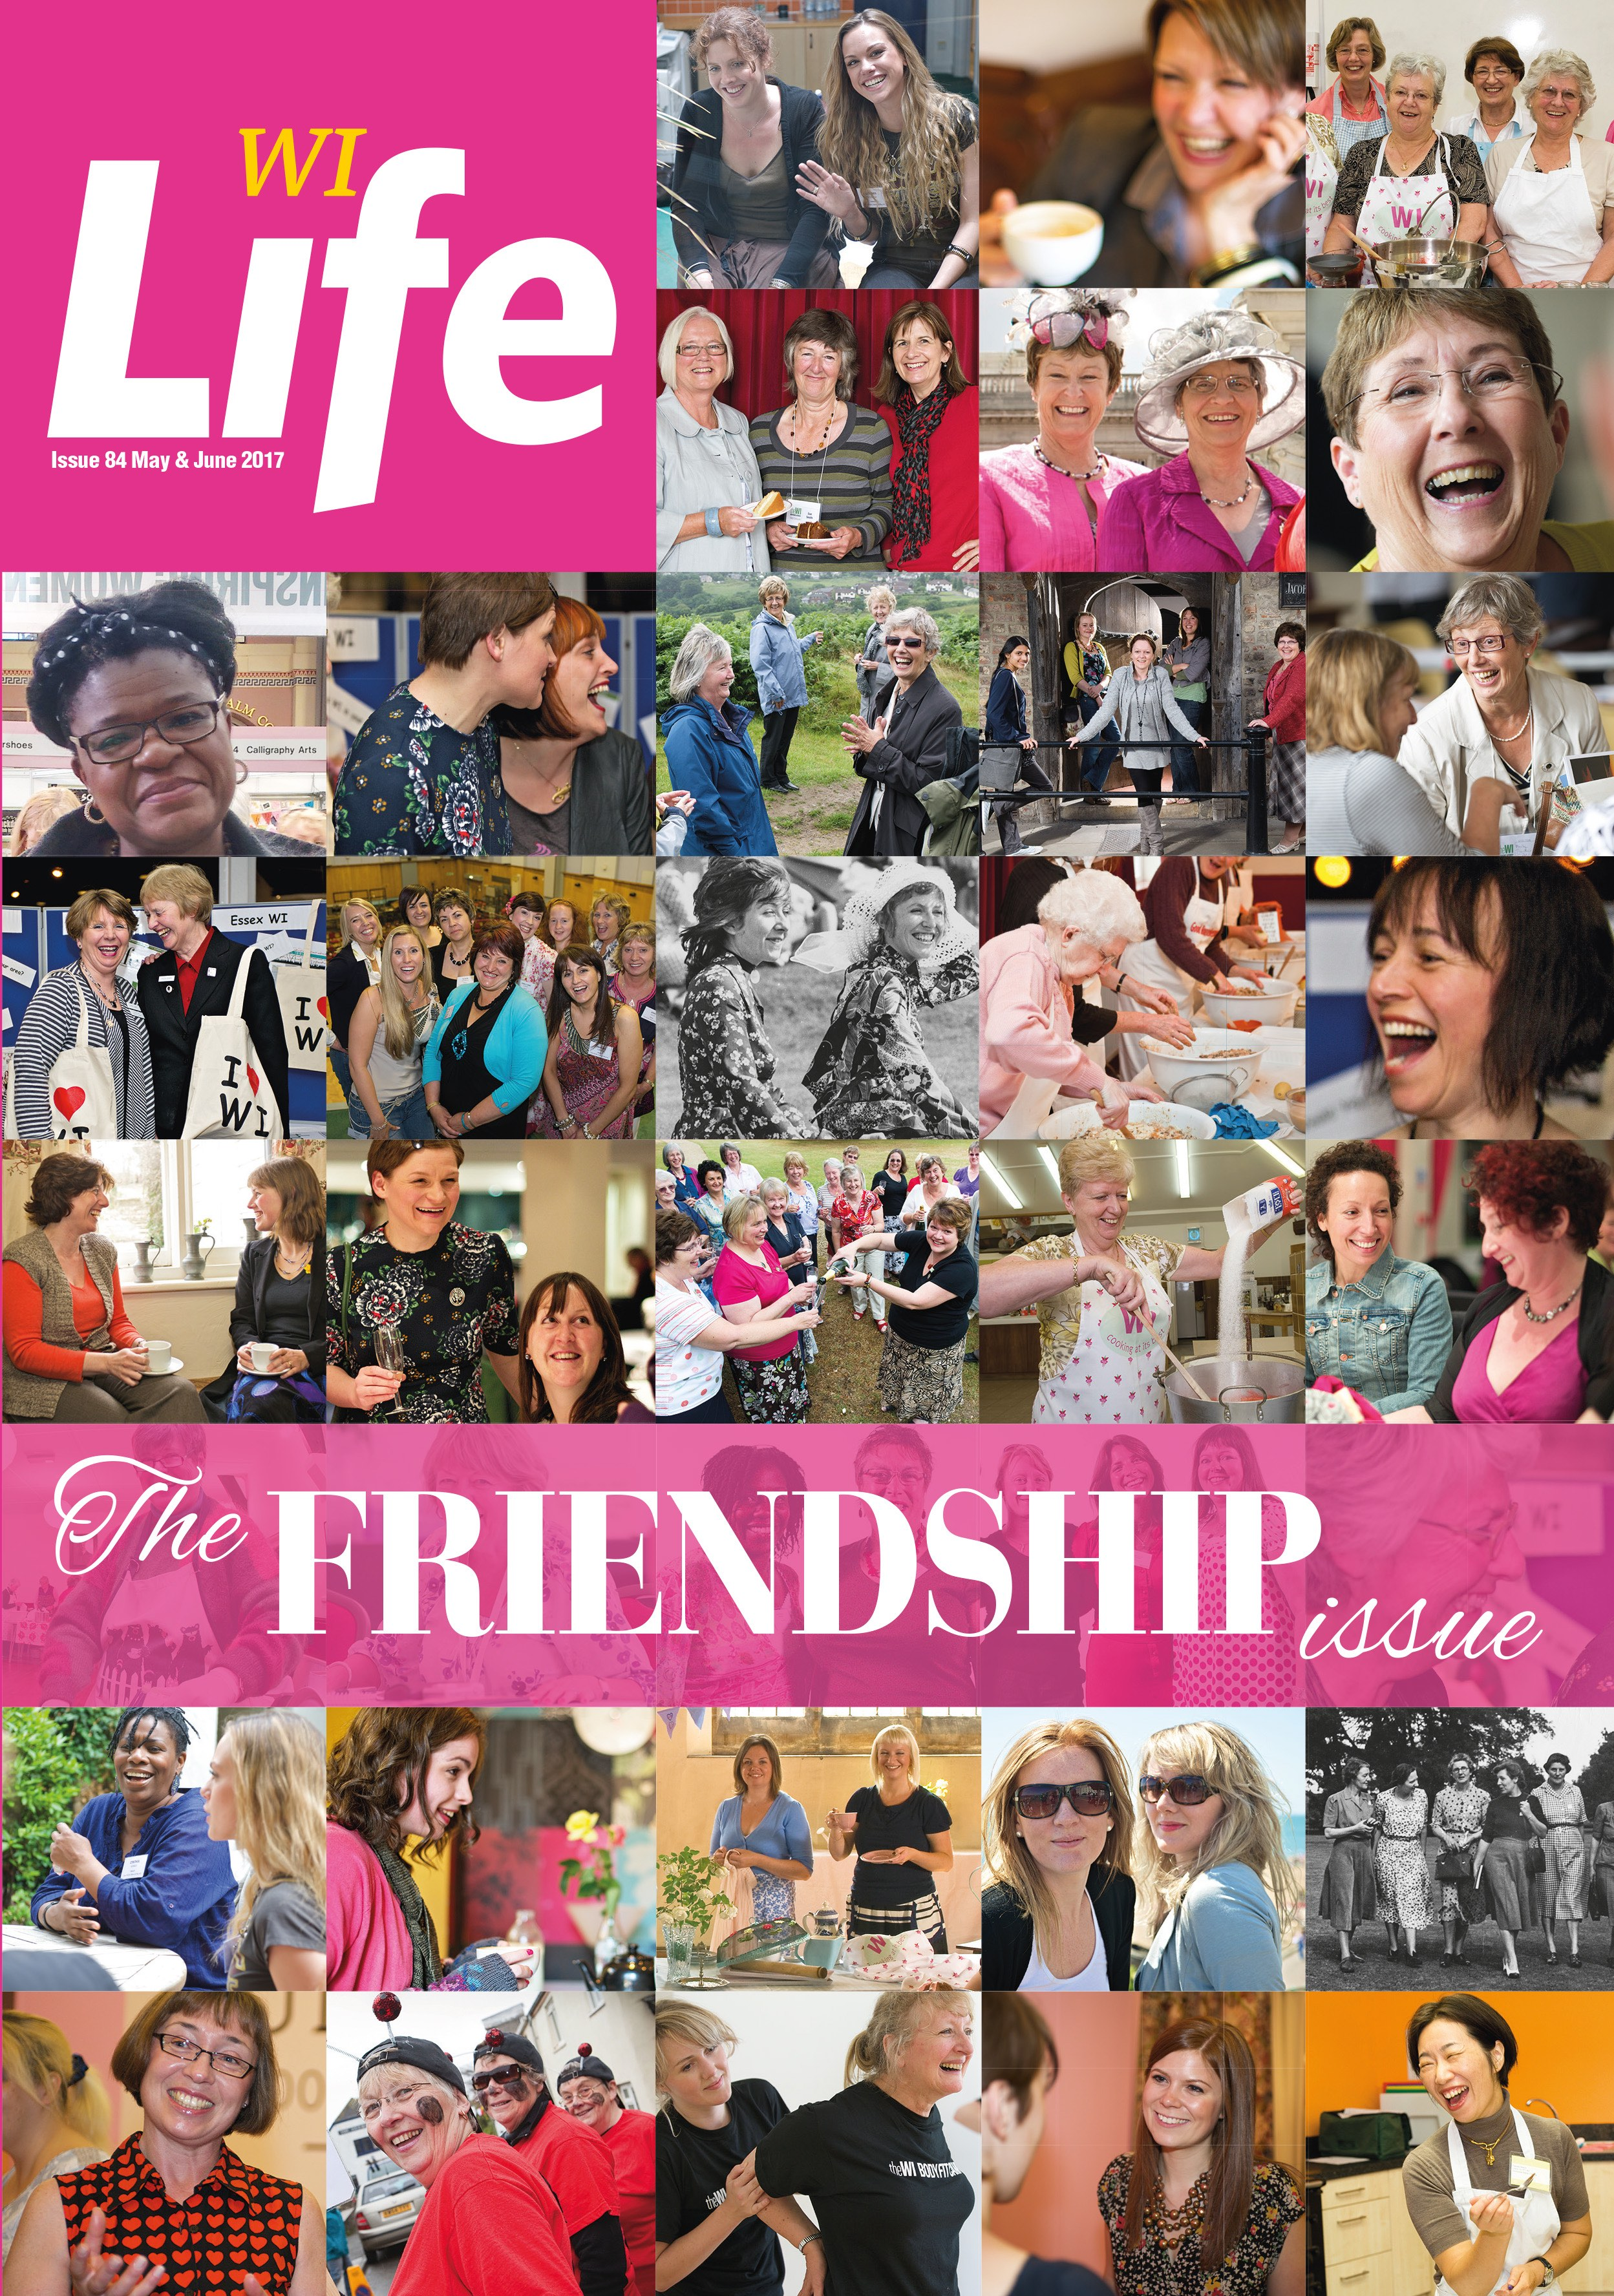 Https Www Thewi Org Uk Data Ets Image 0017 203462 May June Cover Smaller Jpg Wi Life